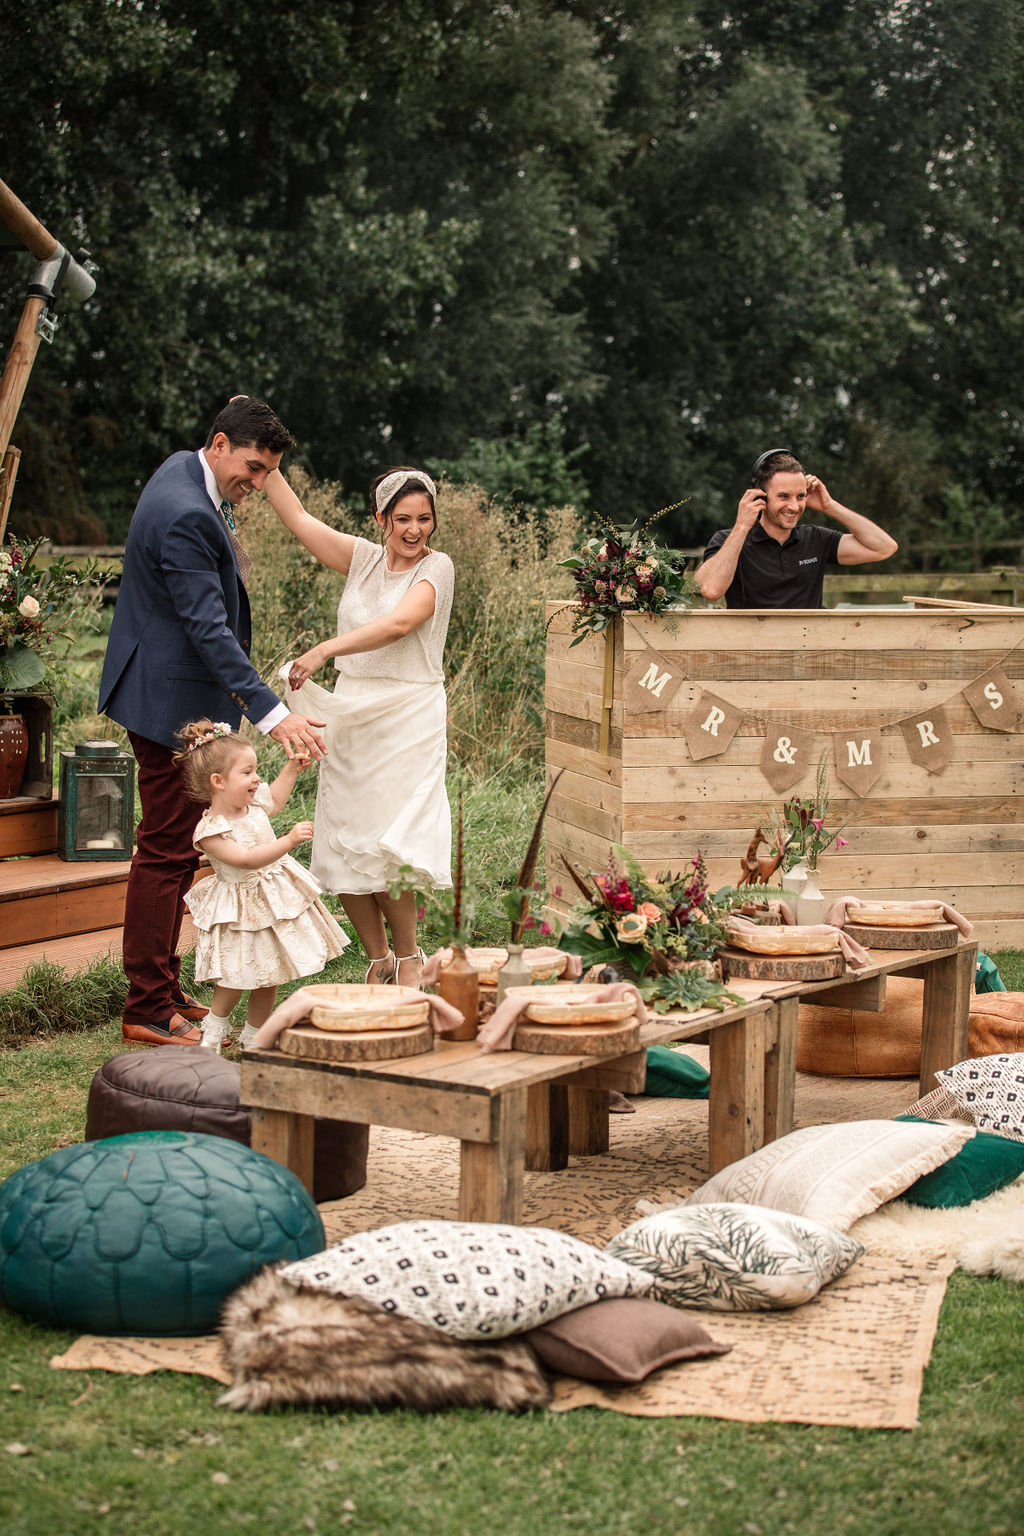 sustainable horsley hale wedding inspiration with Four Counties Awards, image credit Becky Harley Photography